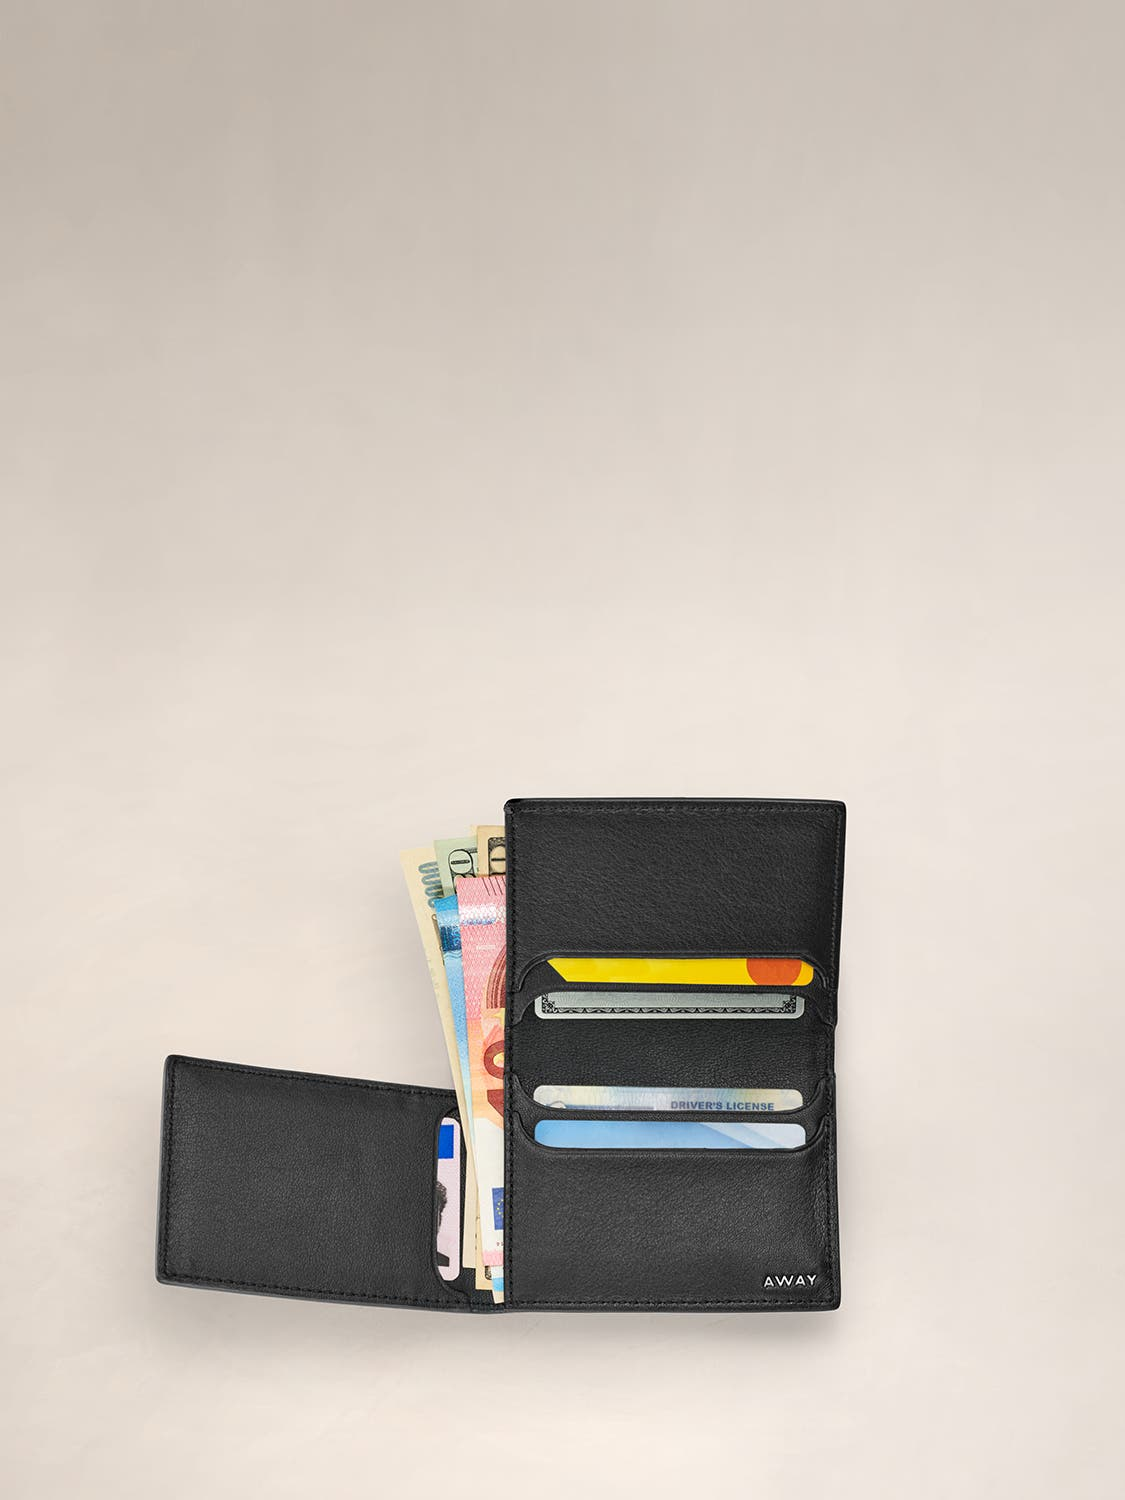 An open view of a black L Fold wallet with cards and cash inserted in various pockets.